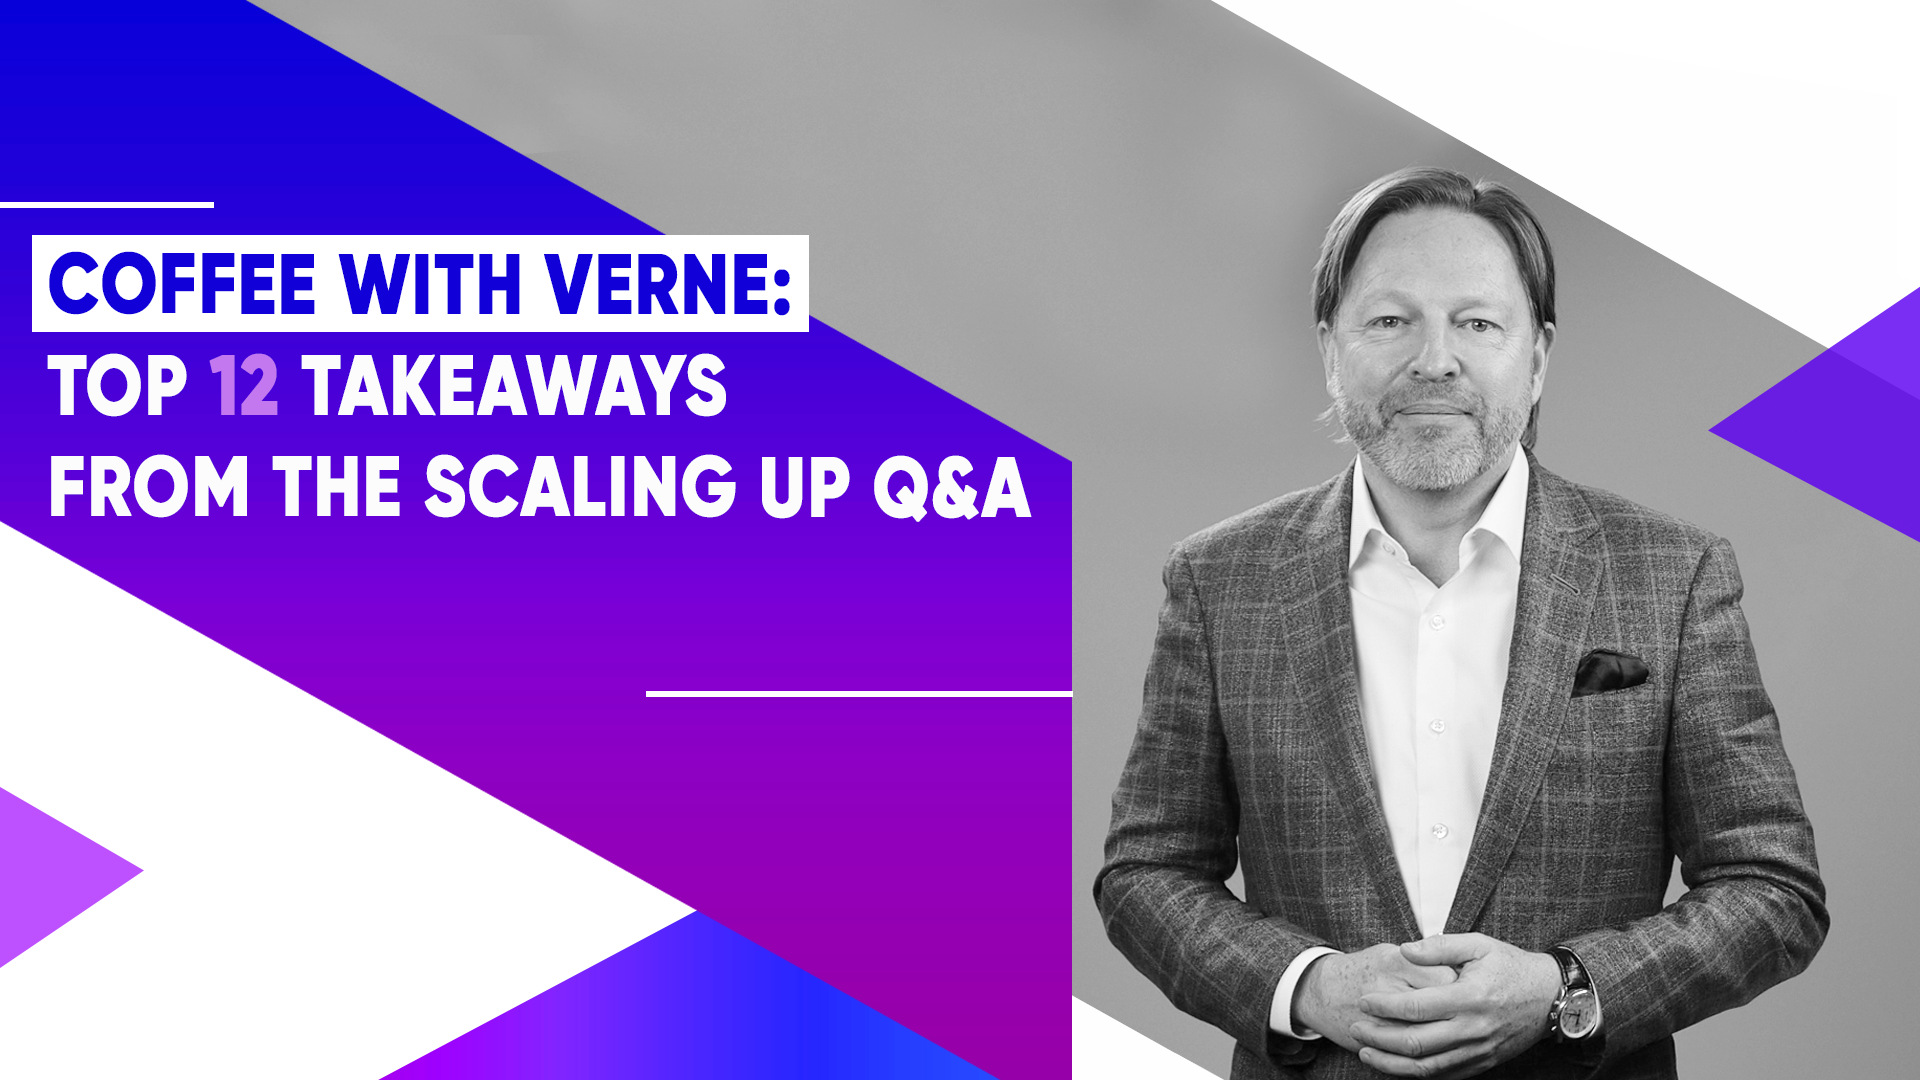 Coffee with Verne: Top 12 Takeaways from the Scaling Up Q&A